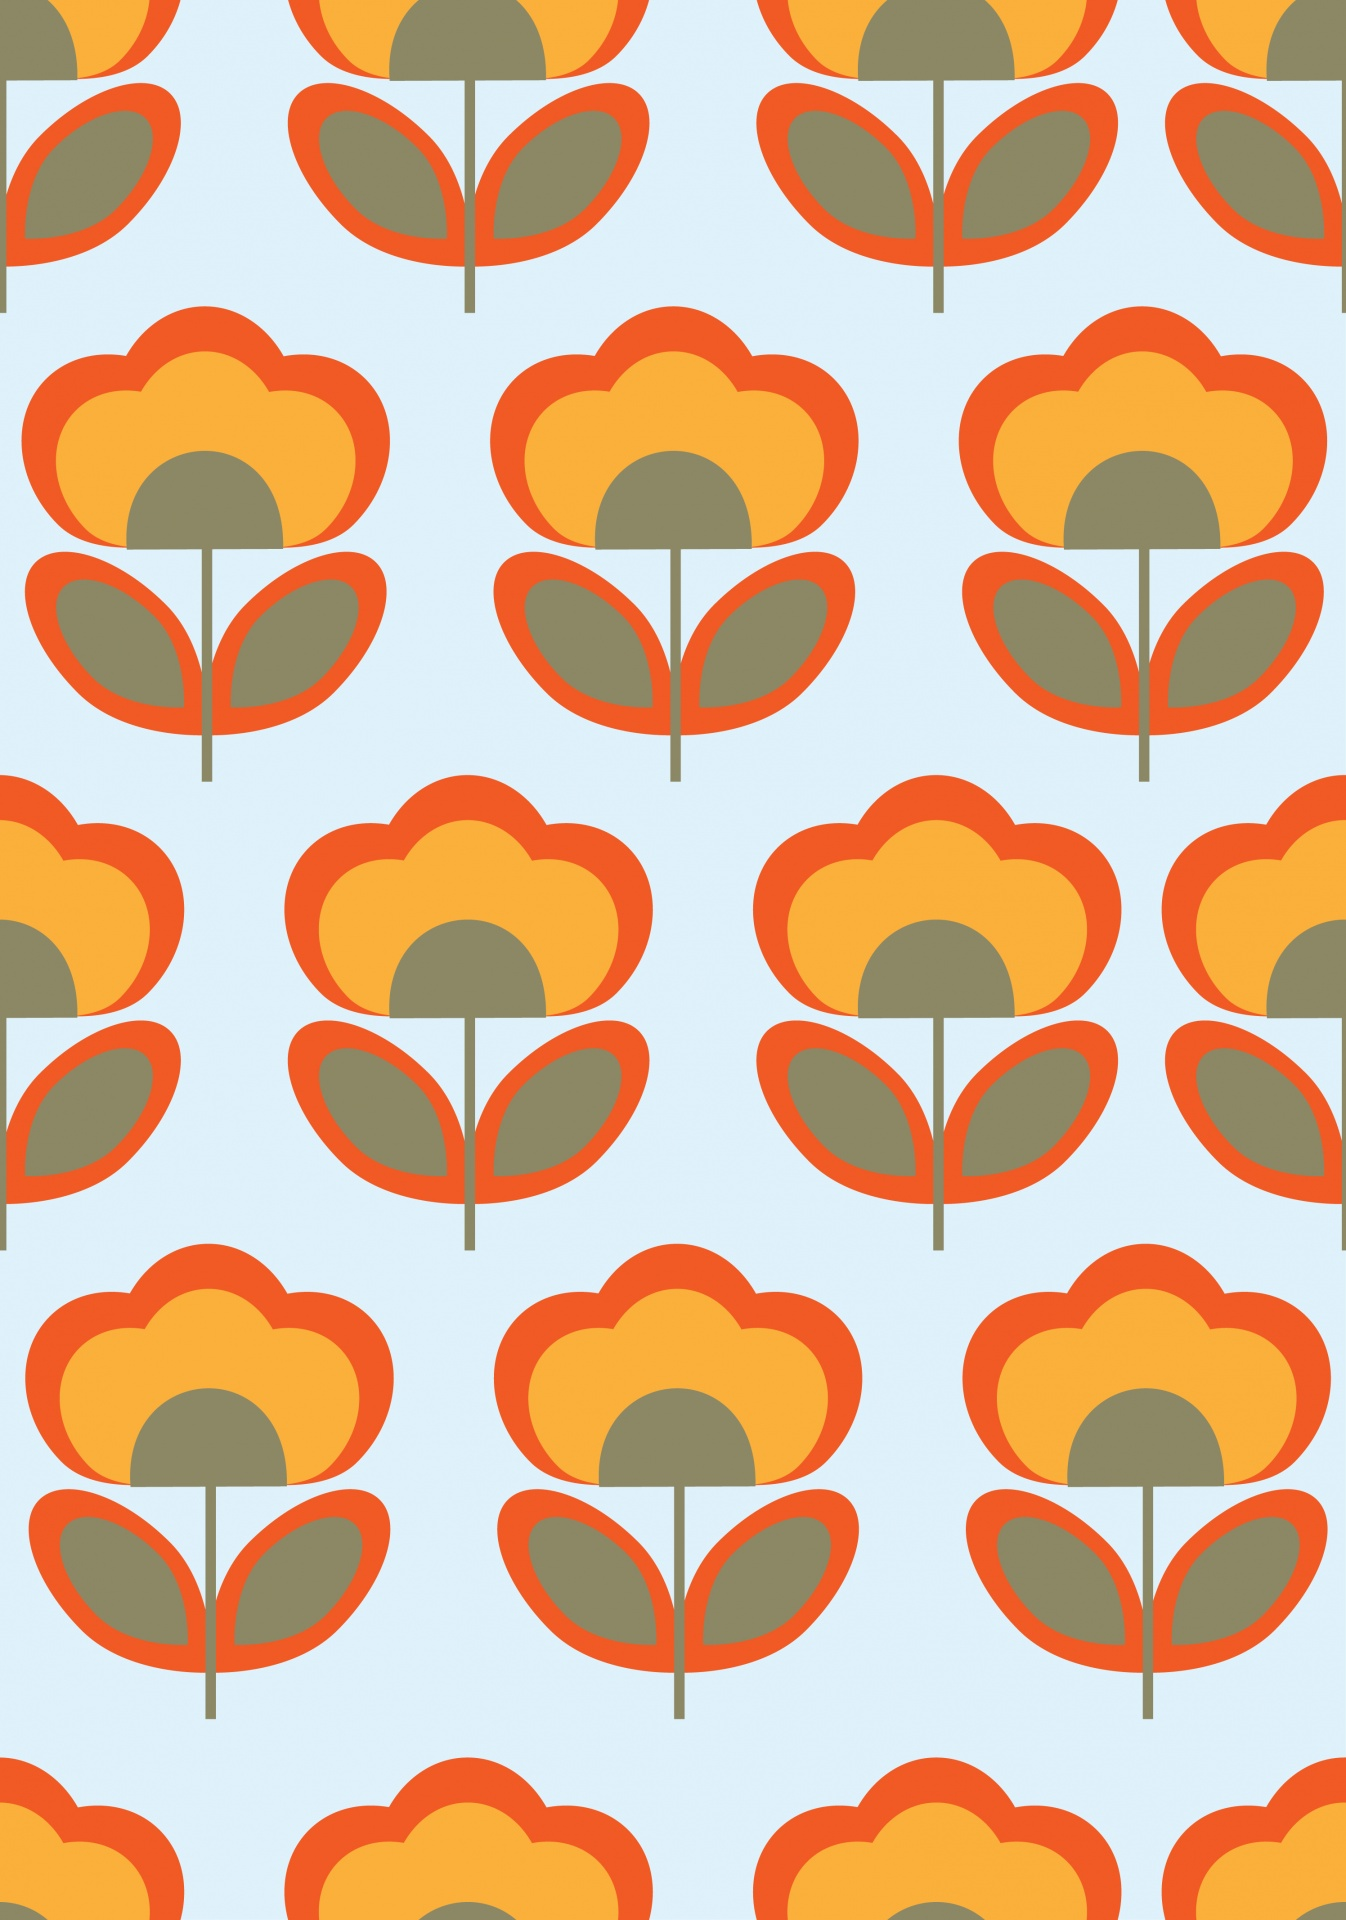 Flowers Floral Flower Wallpaper Paper Free Image From Needpix Com